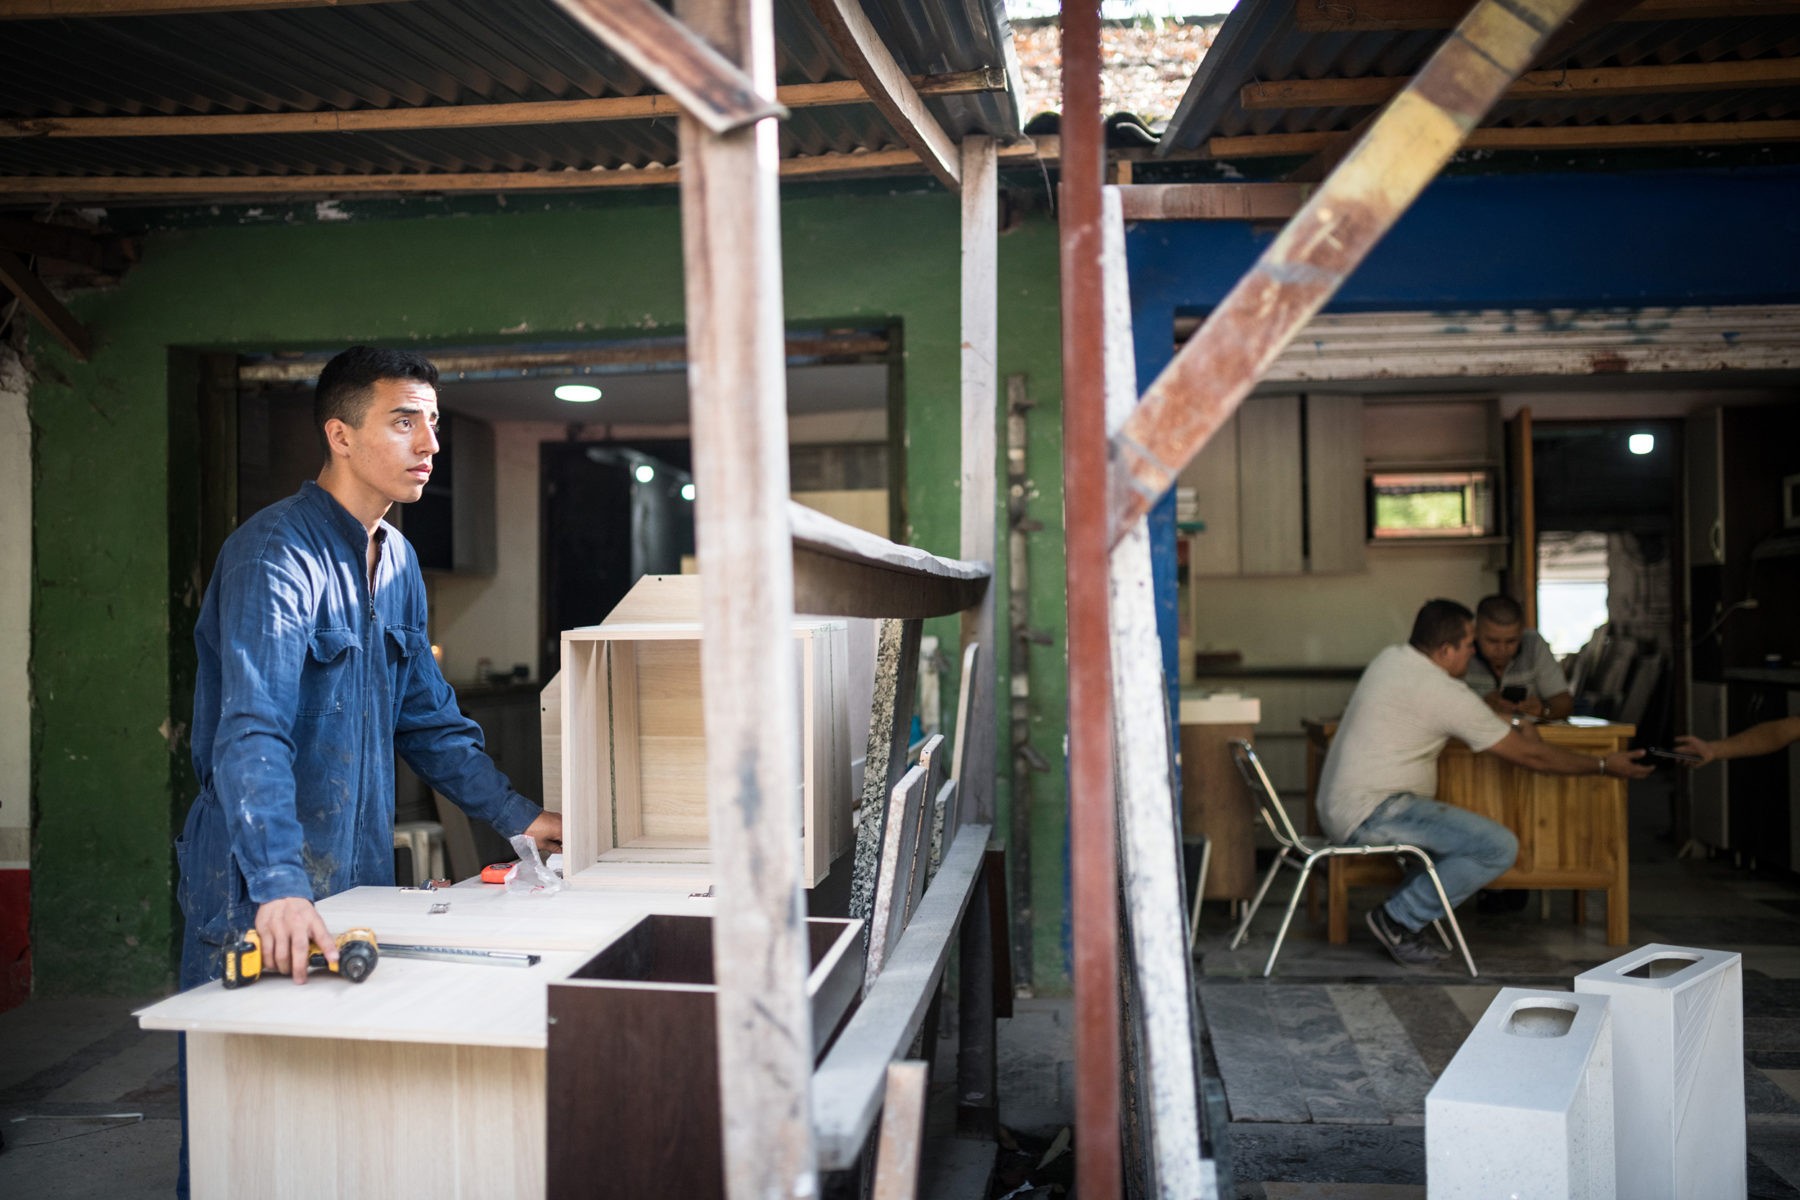 You can't do it without taking on jobs. Even as a national player, Daniel had to bear almost all the costs himself. Here, he works in a carpenter's workshop. He has already sold lots and donuts, danced in front of an audience, shot donation videos, and addressed city councils and pastors.